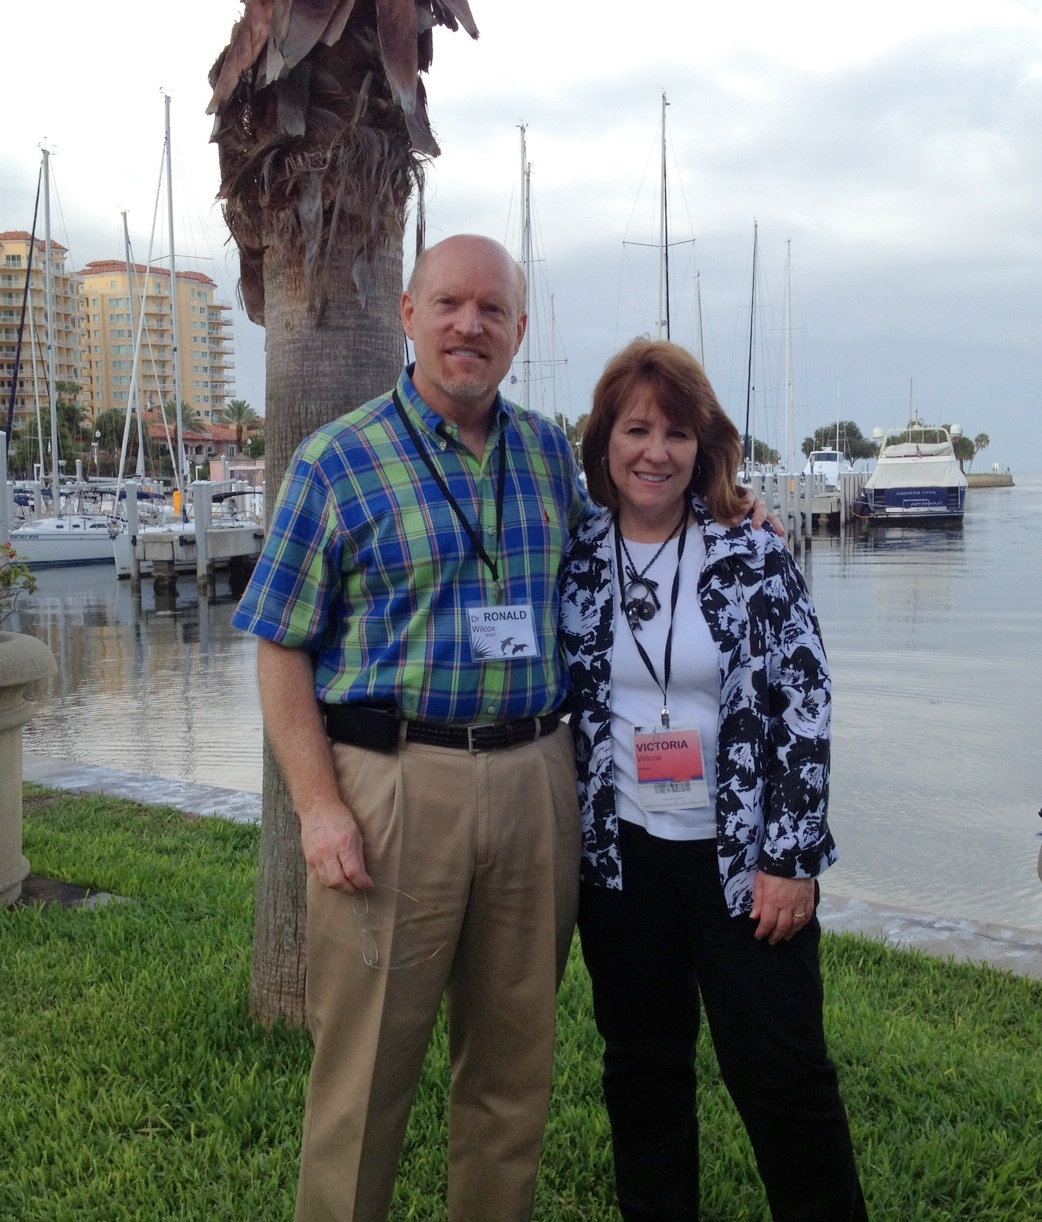 Ron & Vickie St. Pete